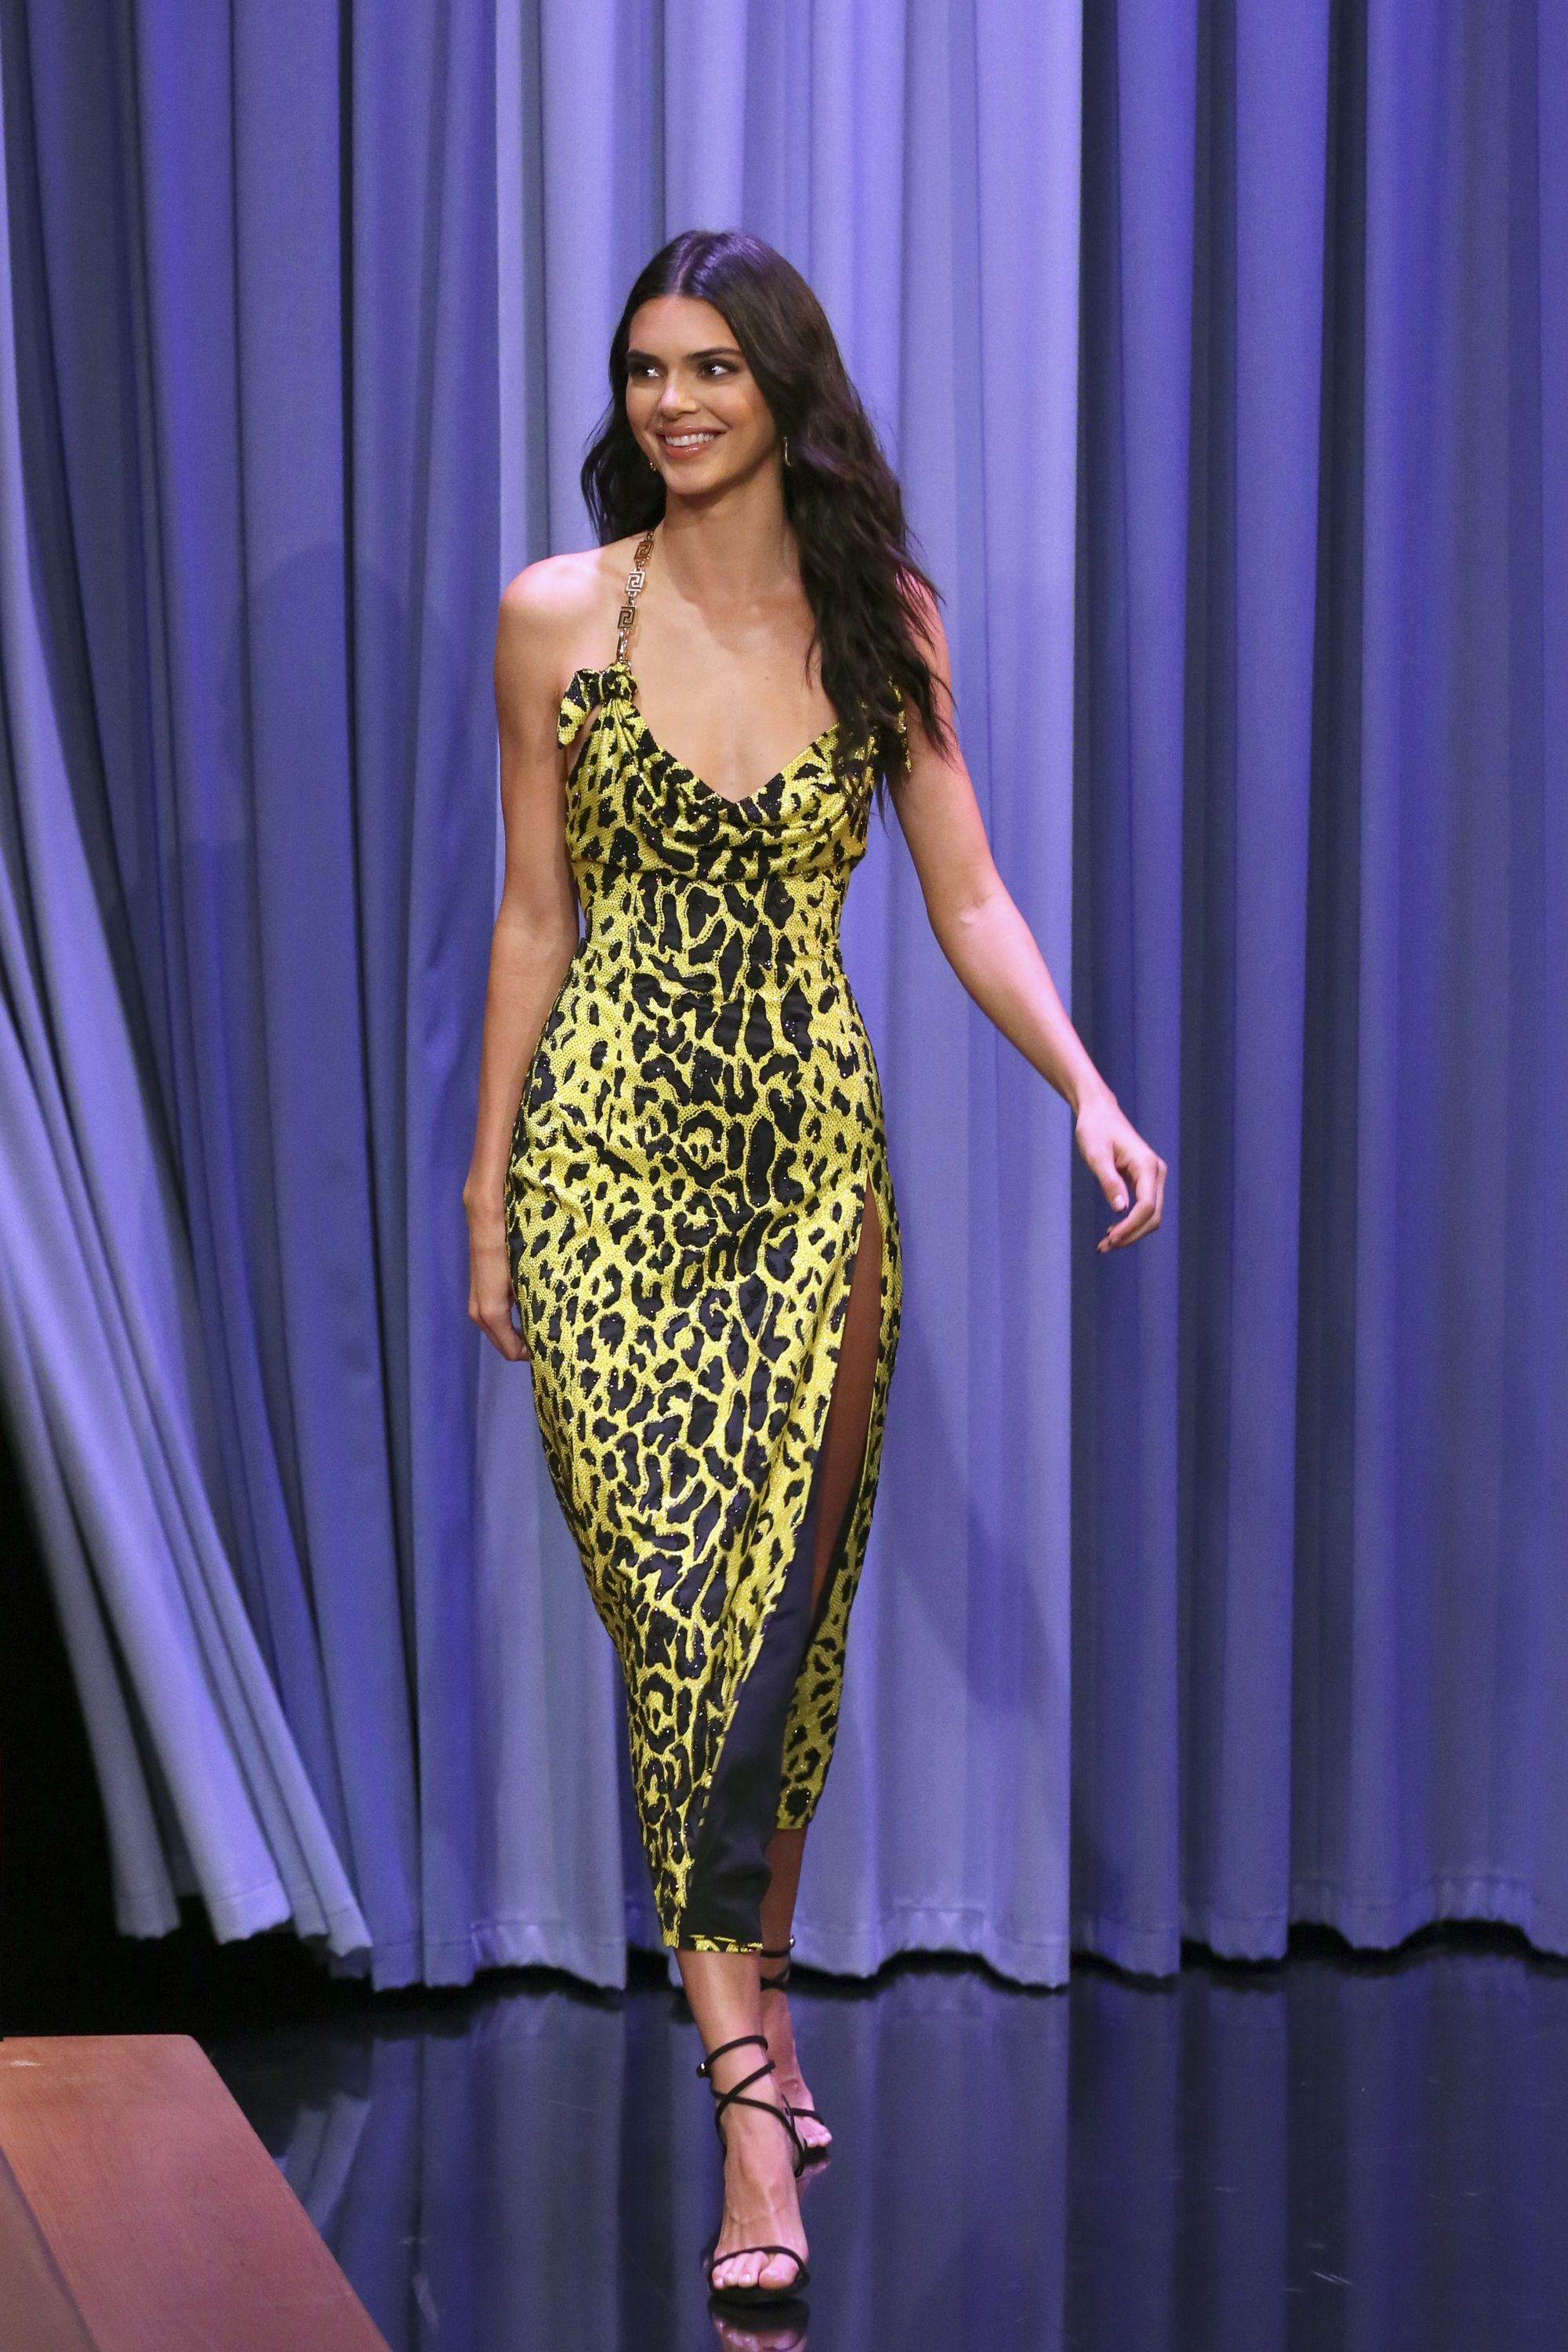 Kendall Jenner In Versace - The Tonight Show Starring Jimmy Fallon